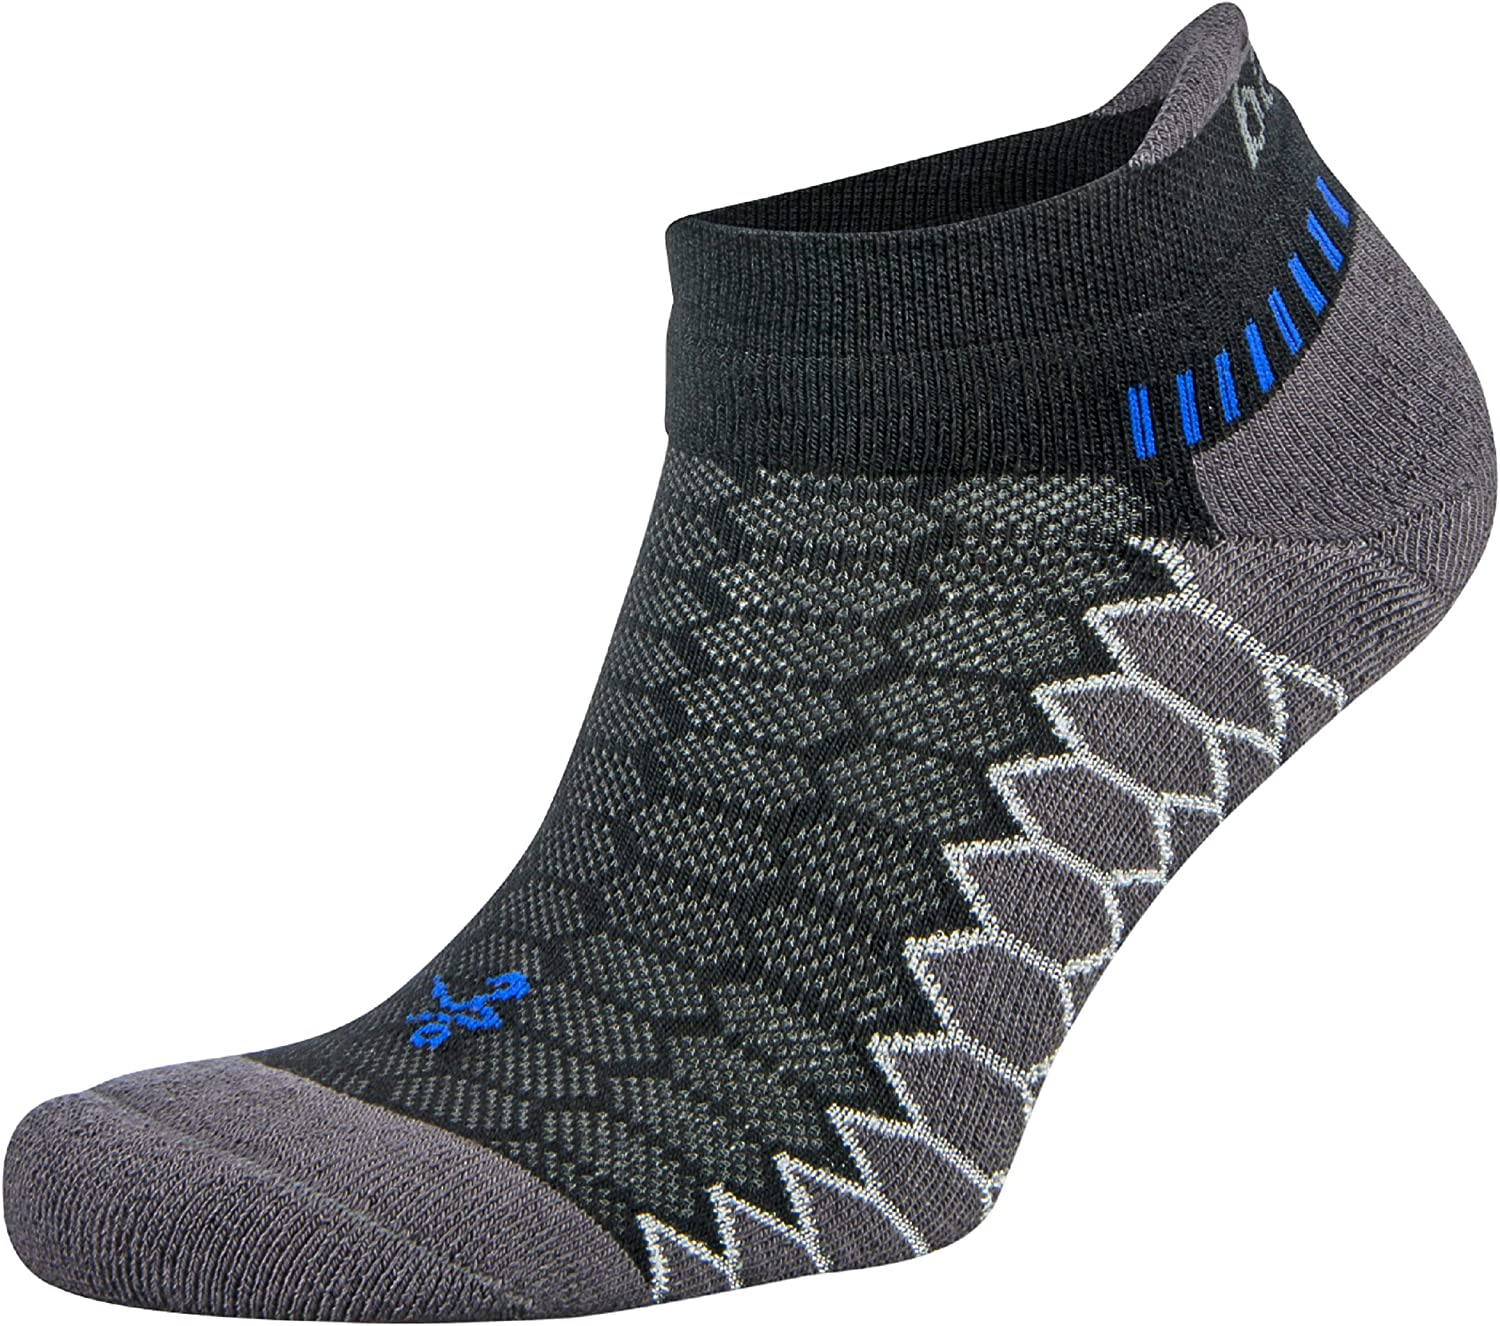 Balega unisex-adult Silver Antimicrobial No-show Compression-fit Running Socks : Clothing